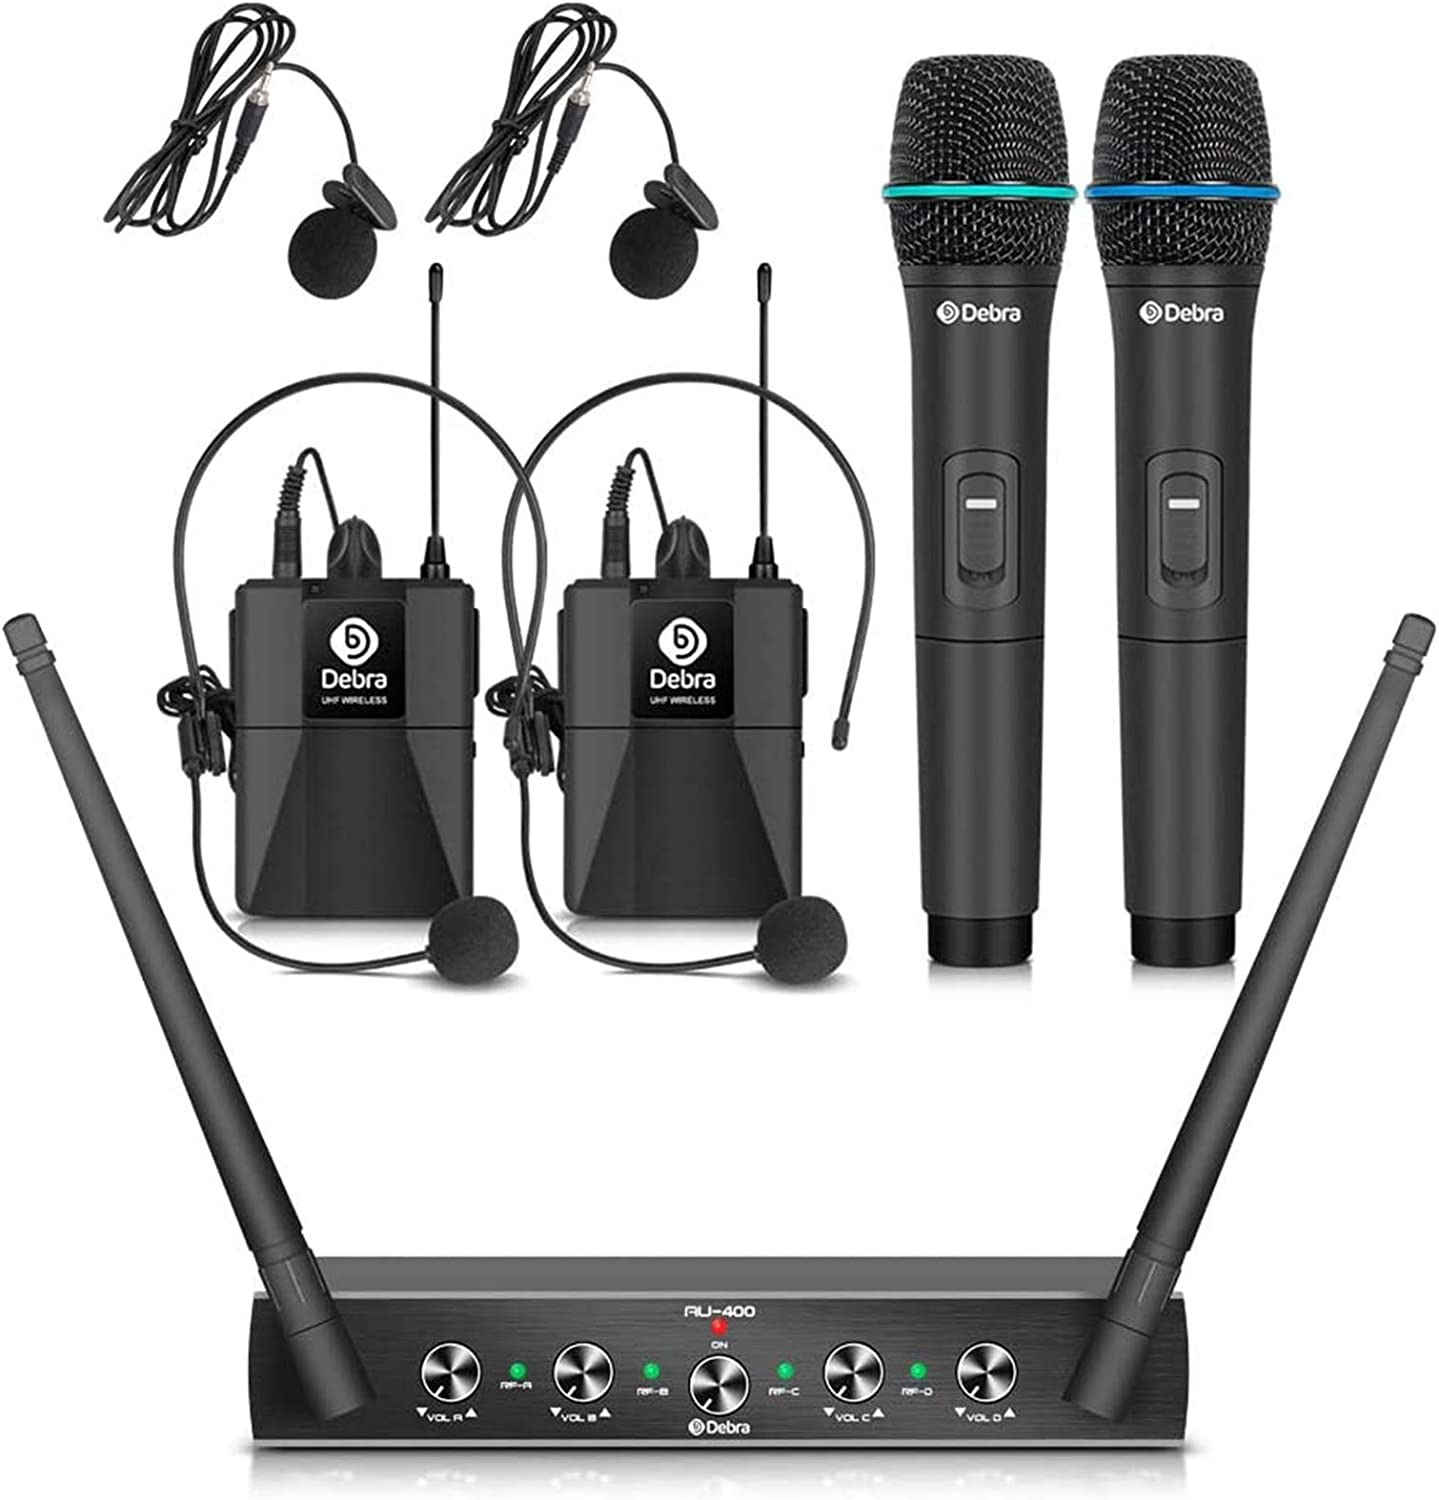 Debra Audio Pro UHF 4 Channel Wireless Microphone System with Cordless Handheld Lavalier Headset Mics, Metal Receiver, Ideal for Karaoke Church Party (with 2 Handheld & 2 Bodypack (A)): Home Audio & Theater